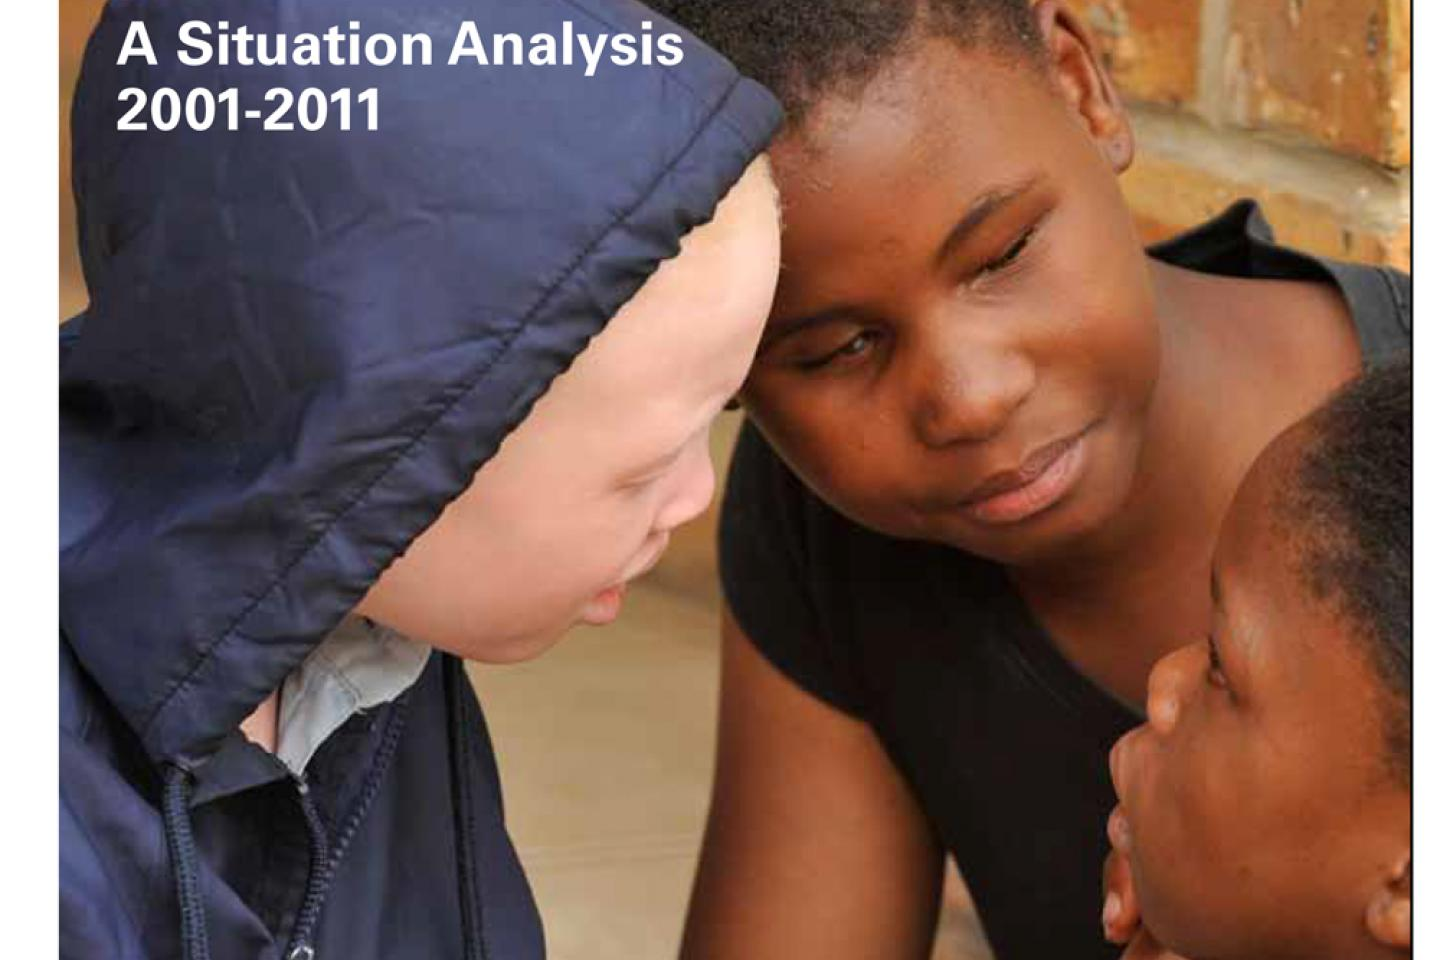 Children with Disabilities in South Africa | UNICEF South ...